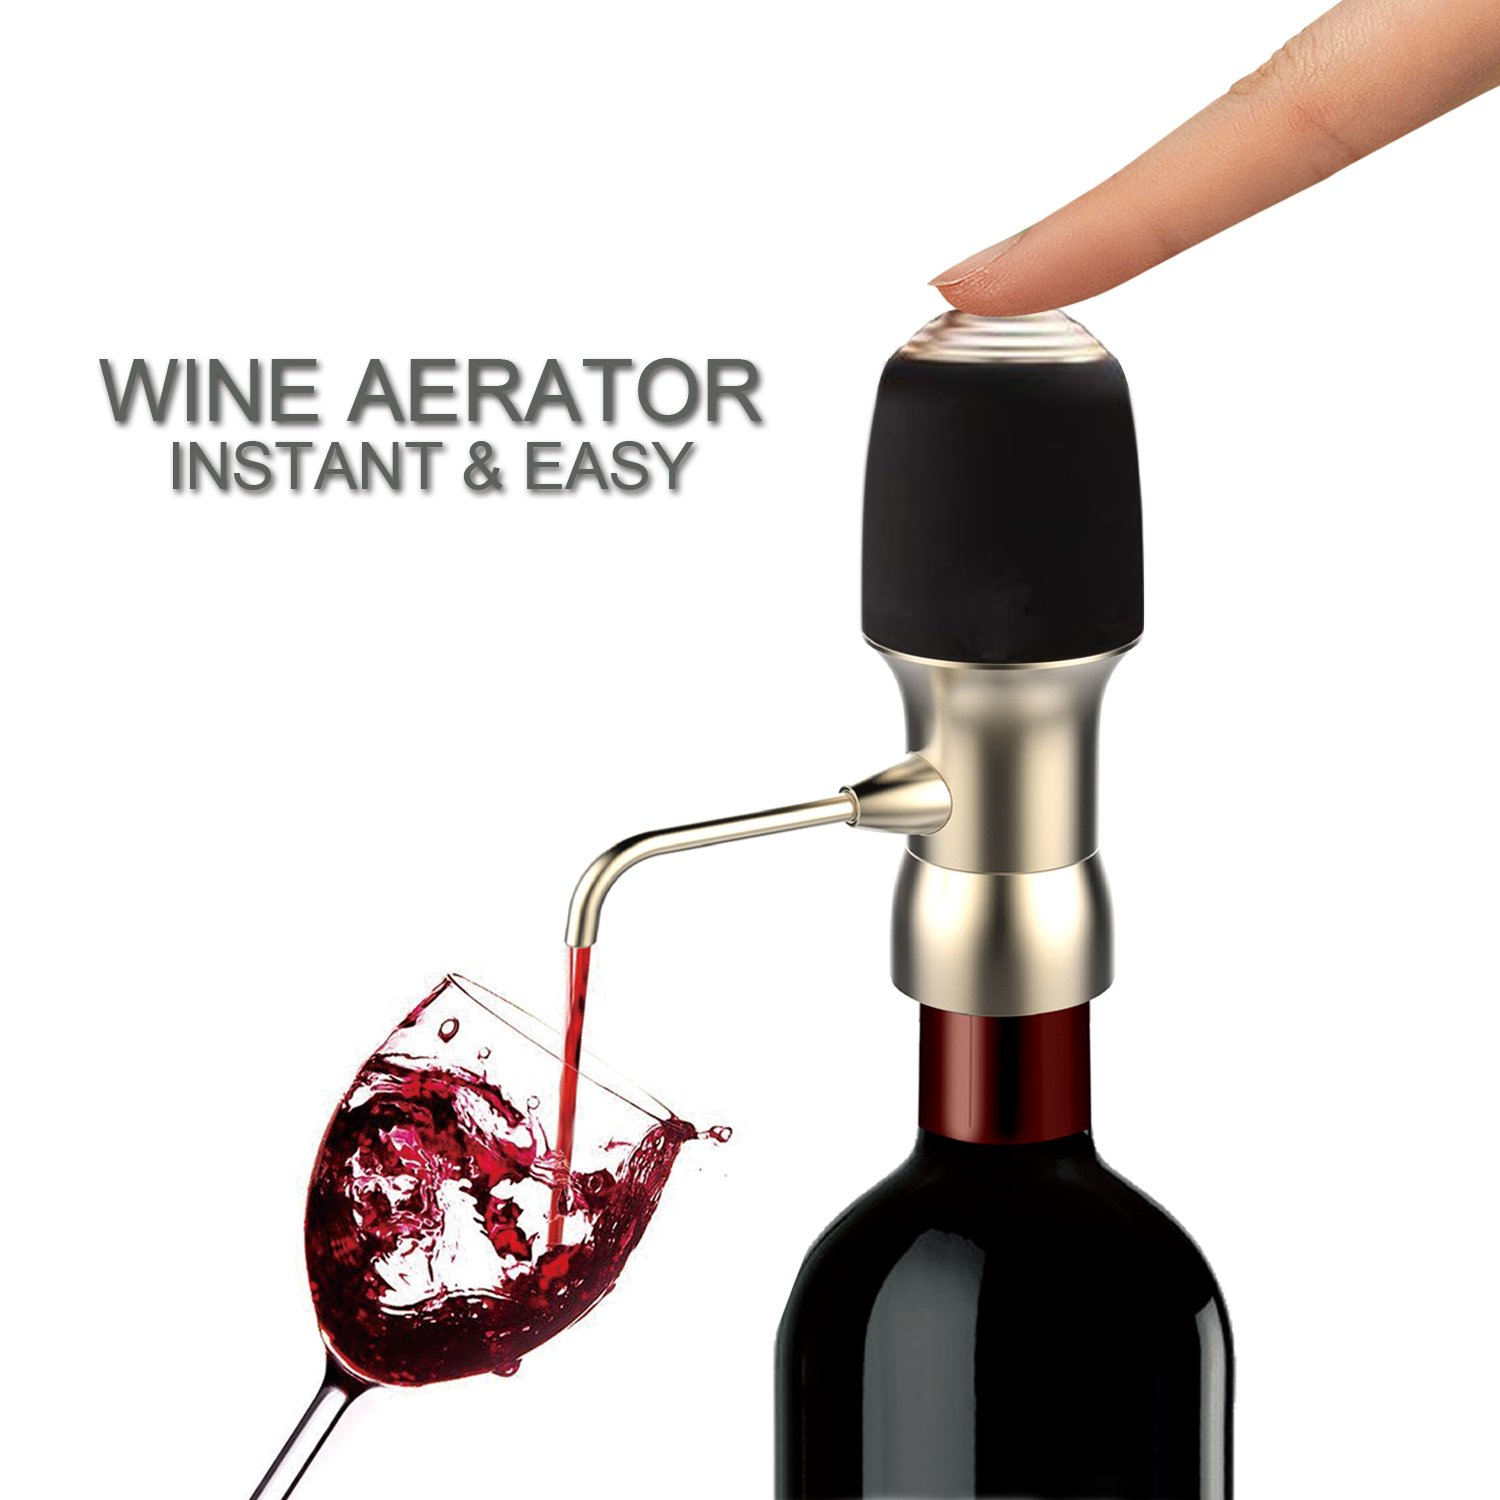 Wine Air Aerator, Spedal 1-Button Aeration & Decanter Electric Wine Aerator, Wine Aerator Pourer, Wine Decanter Aerator, Red Wine Aerator for Wine Bottle, Enhance Wine Flavor, Wine Gift